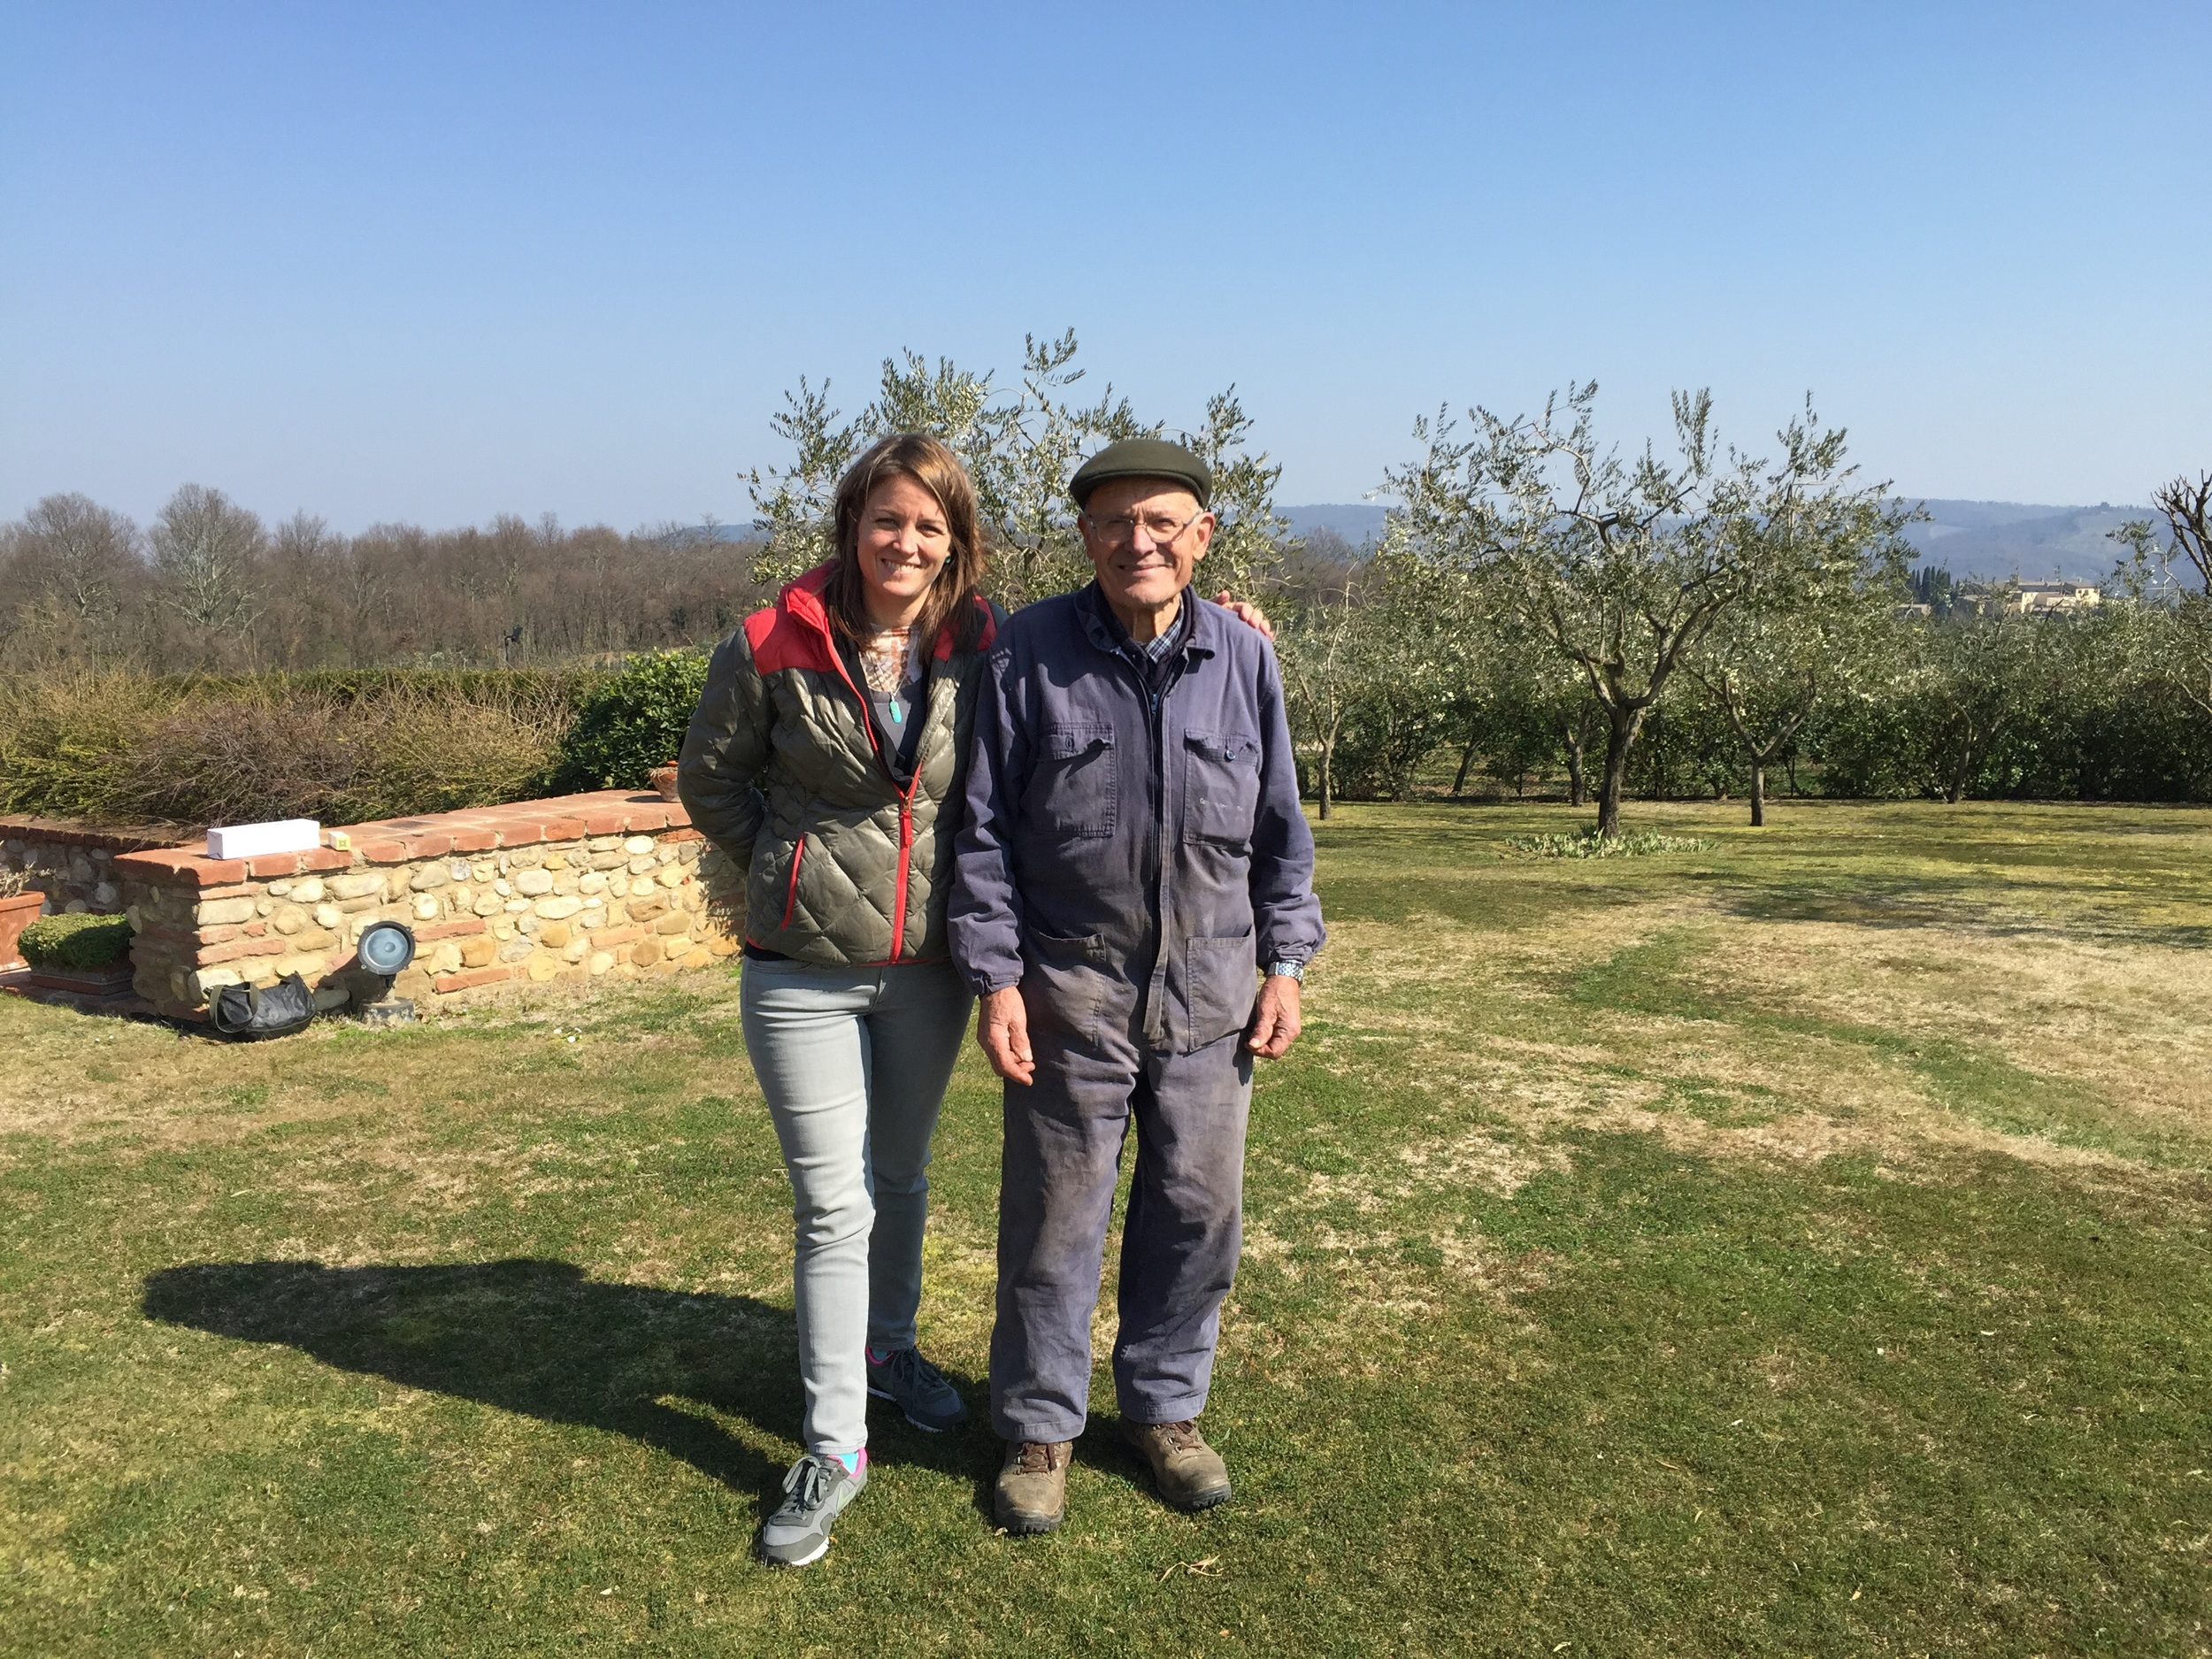 Franco, one of Pretto's prized winemakers.